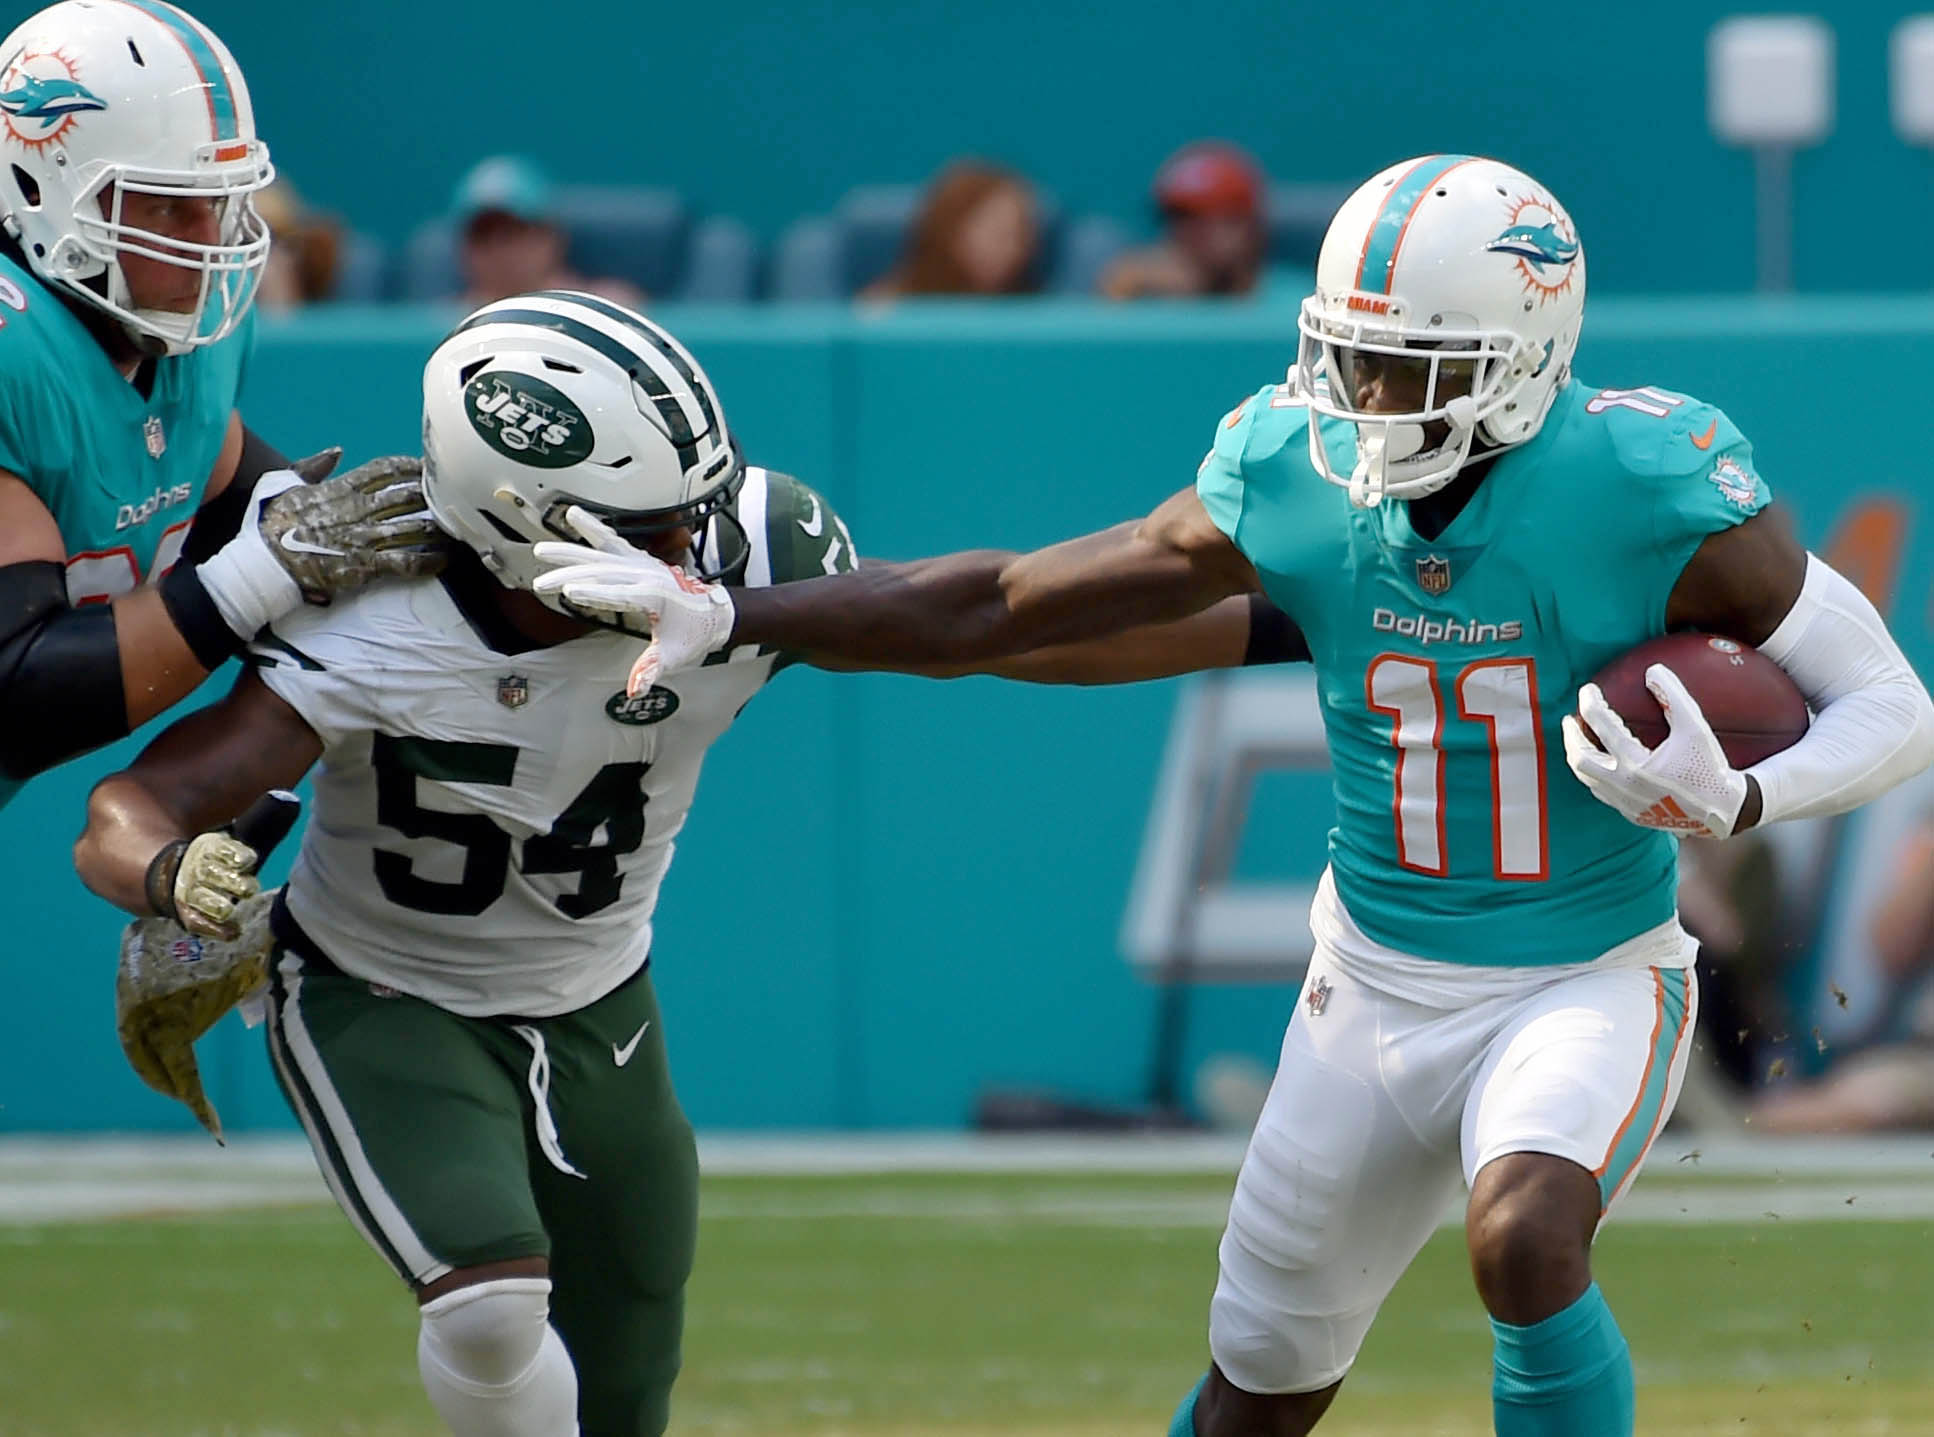 Dolphins could be moving on from DeVante Parker, Danny Amendola